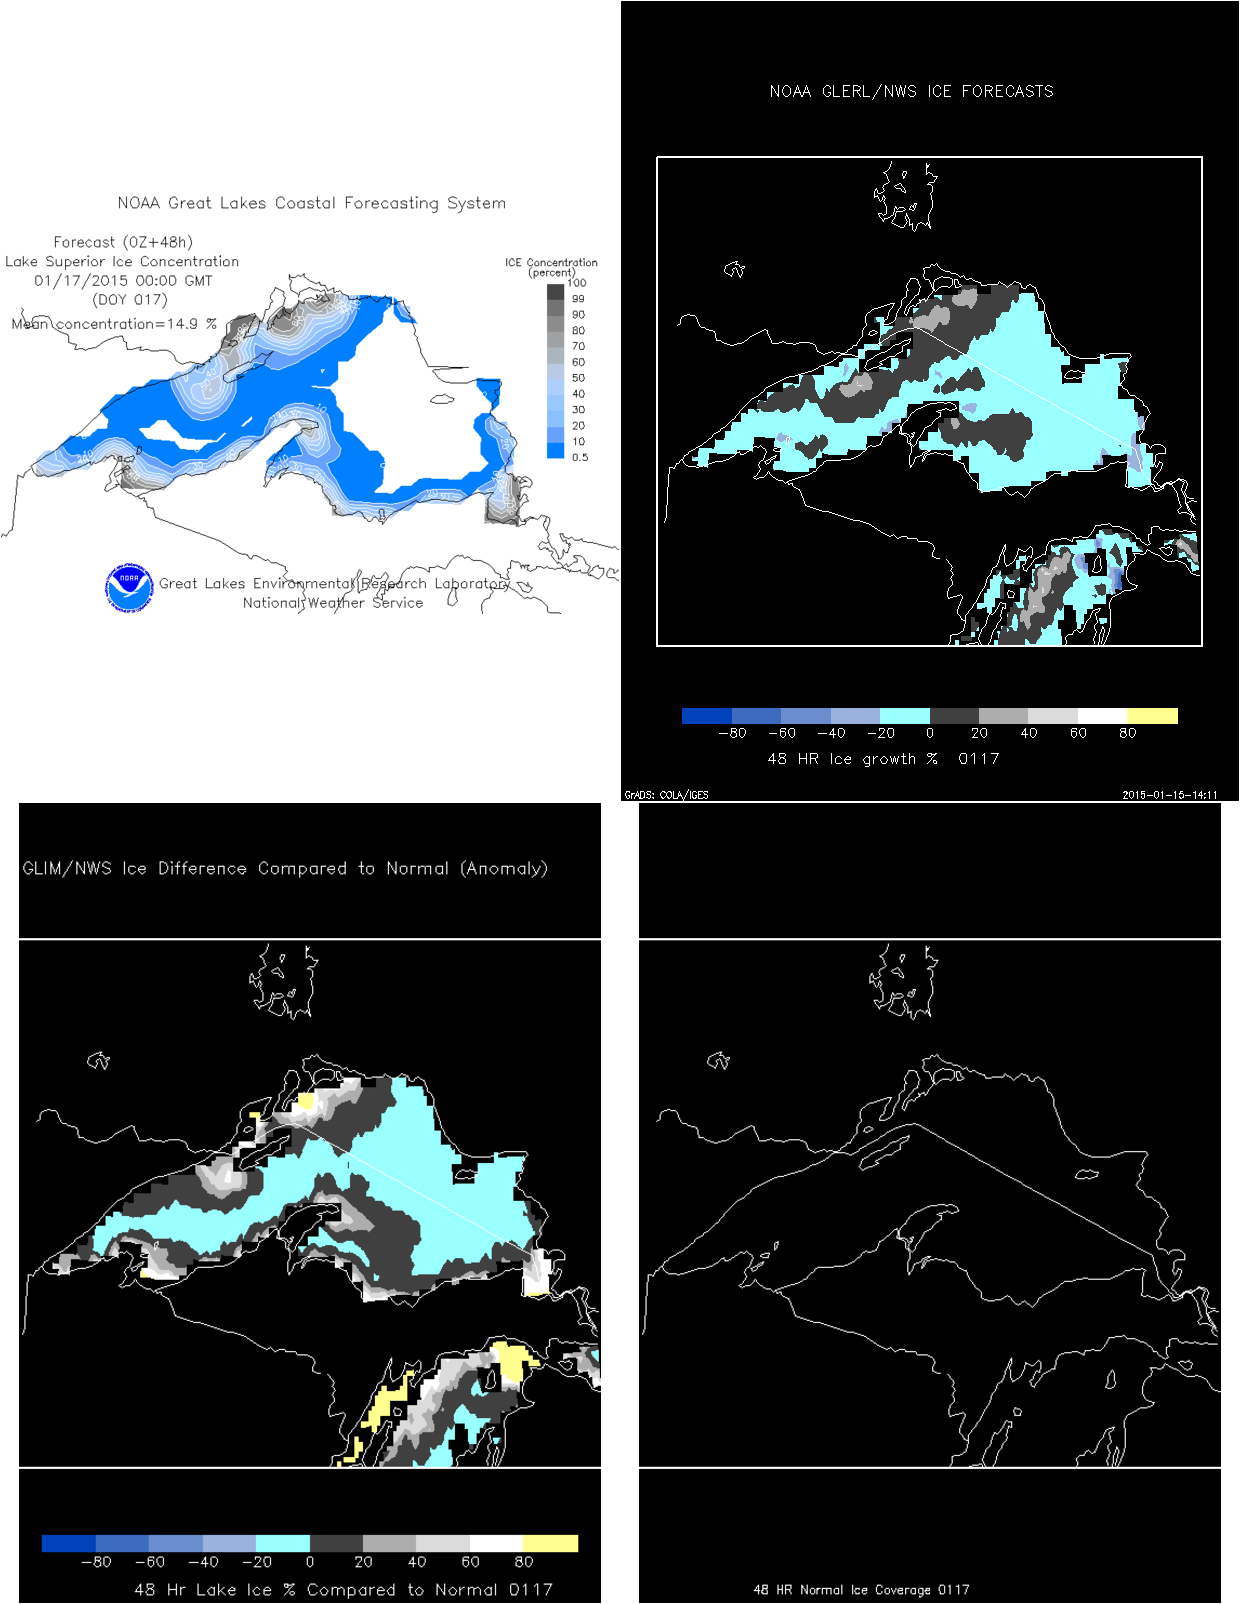 Click for forecast ice concentration, percent change, climate anomaly, normals